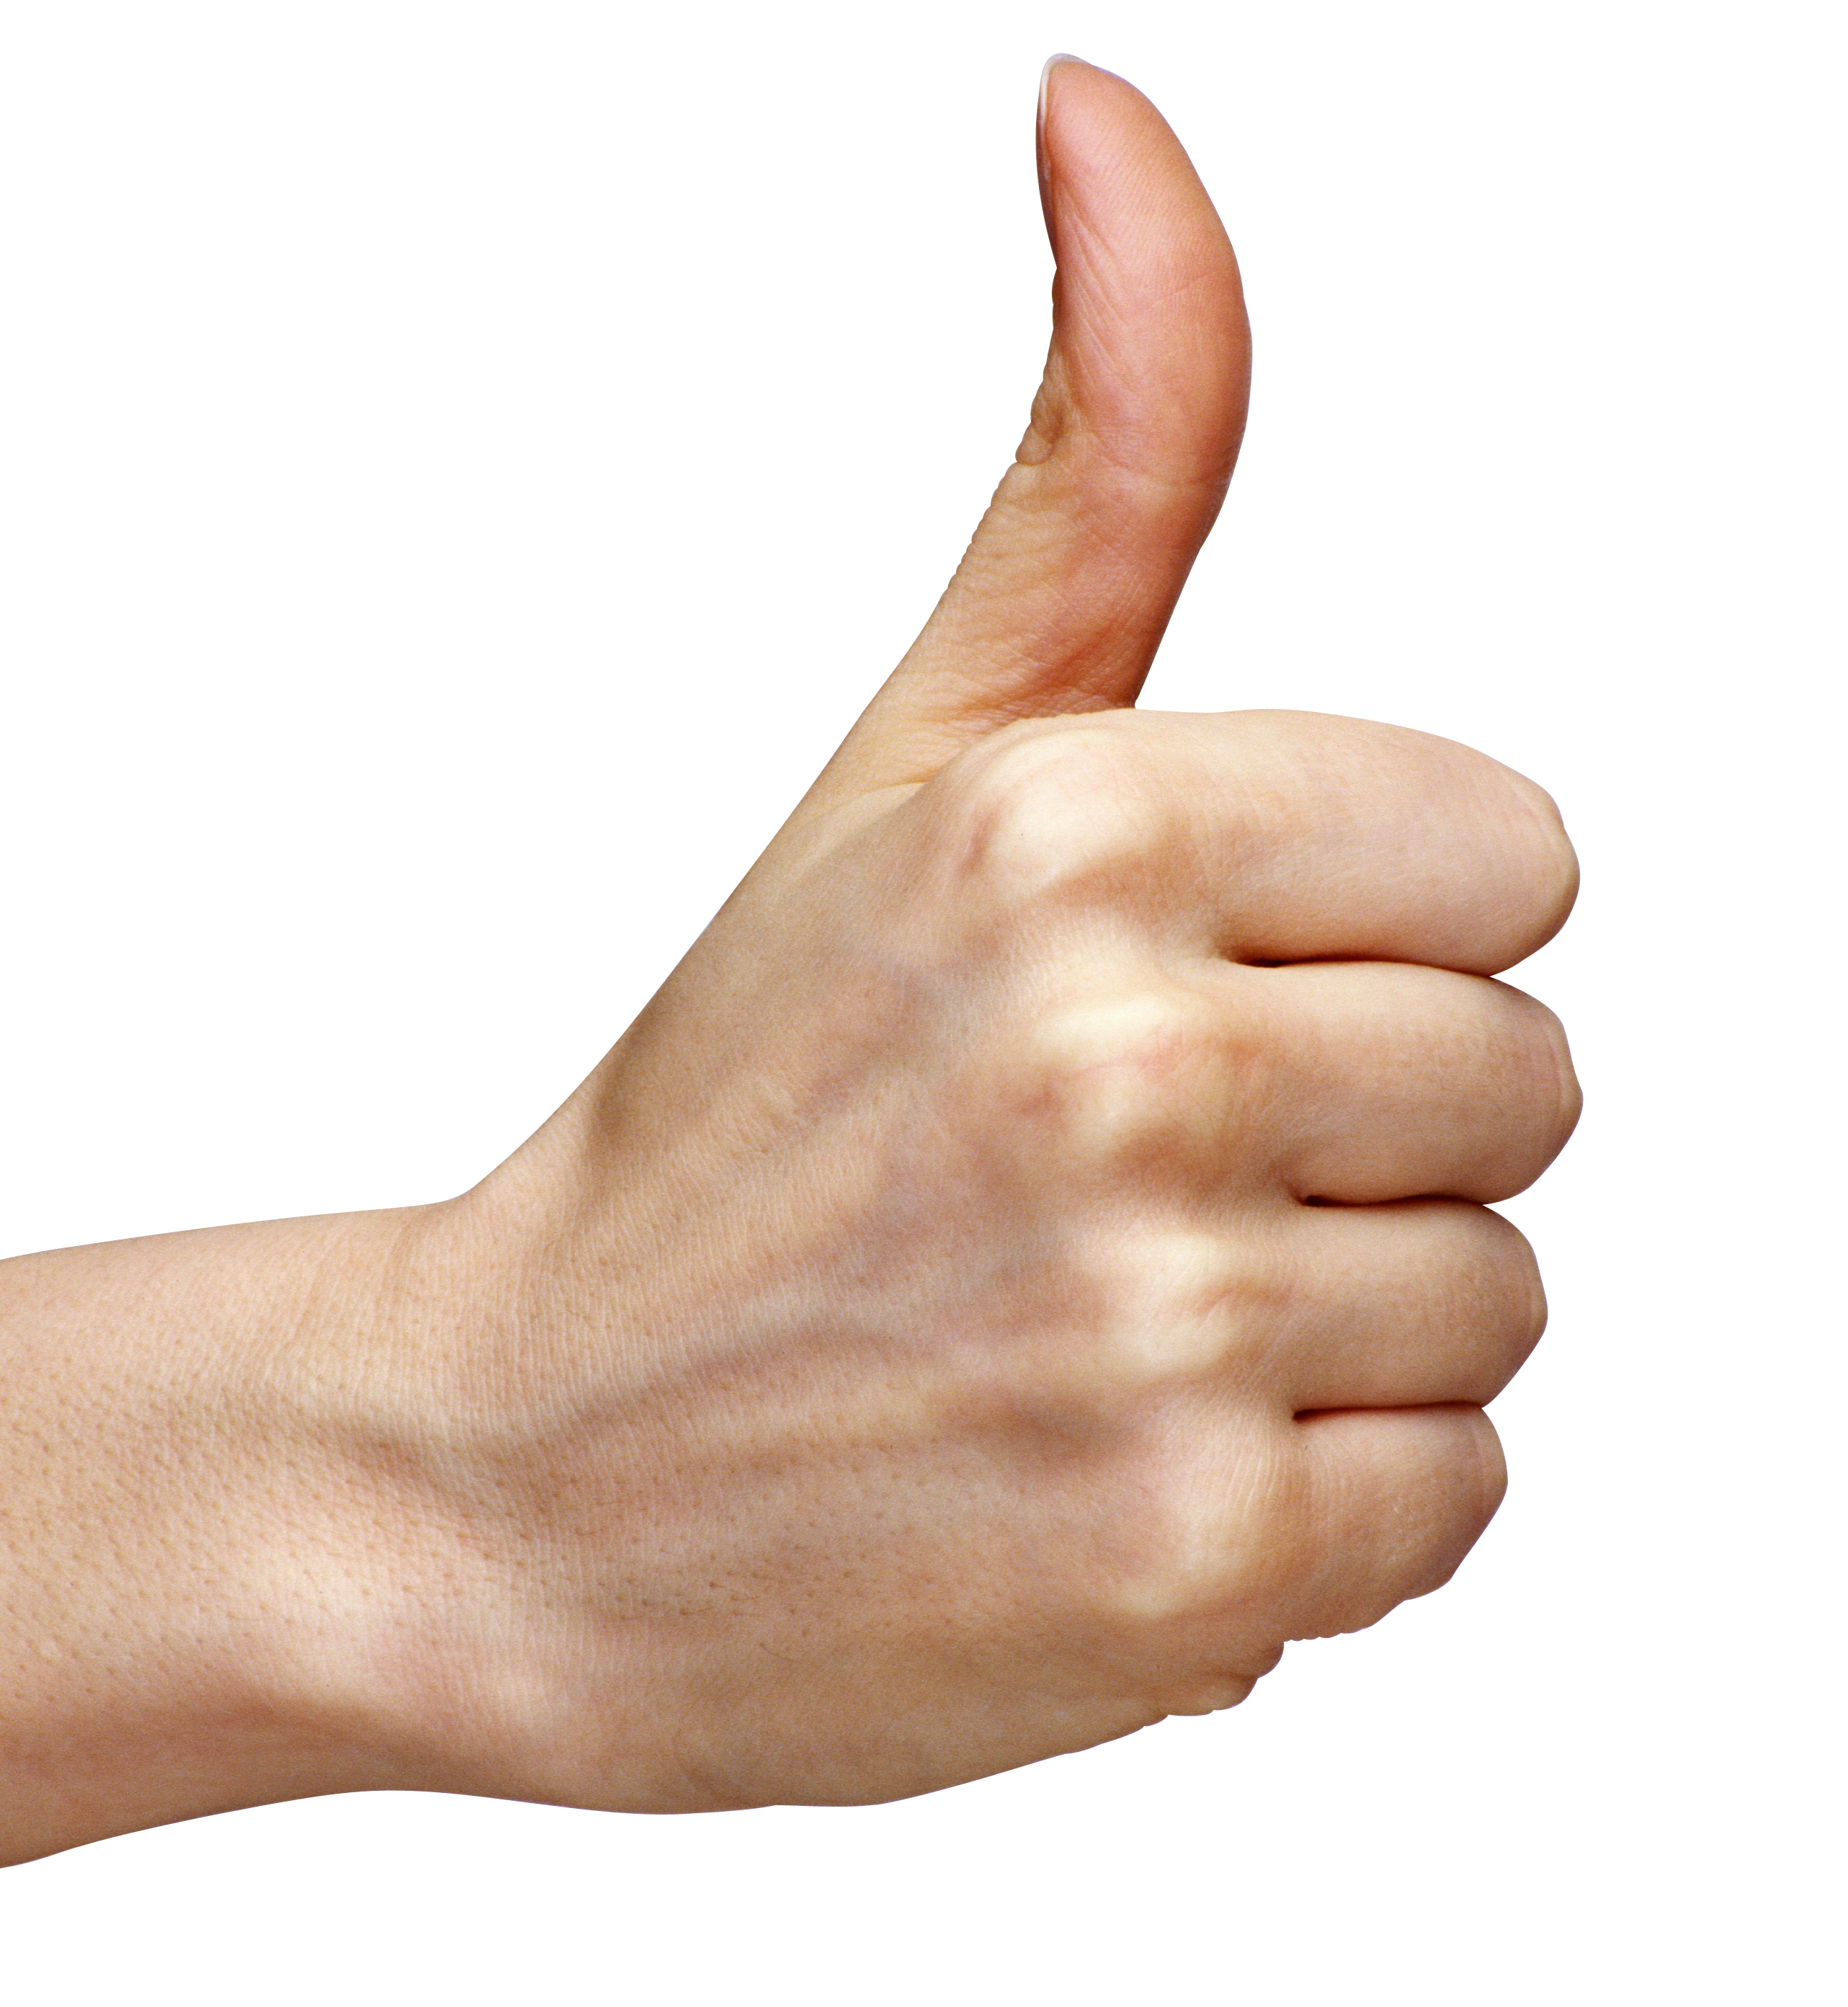 Hands clipart transparent background. Thumb up hand png